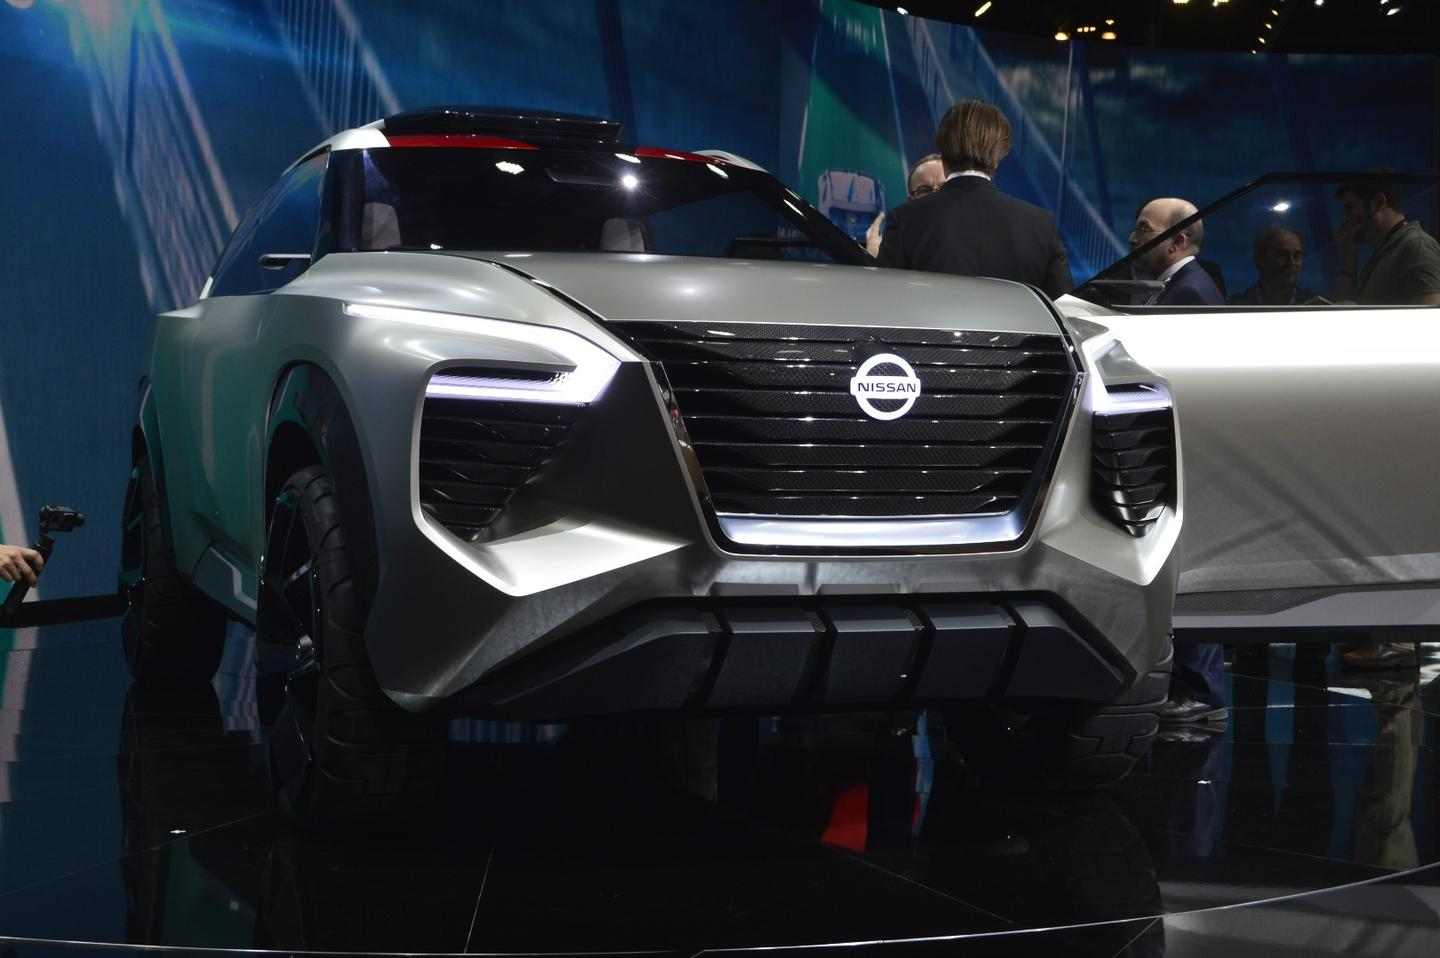 The front of the Nissan XMotion is thick with a wide grille, heavy overhang, and strong fenderwork over beefy tires and wheels